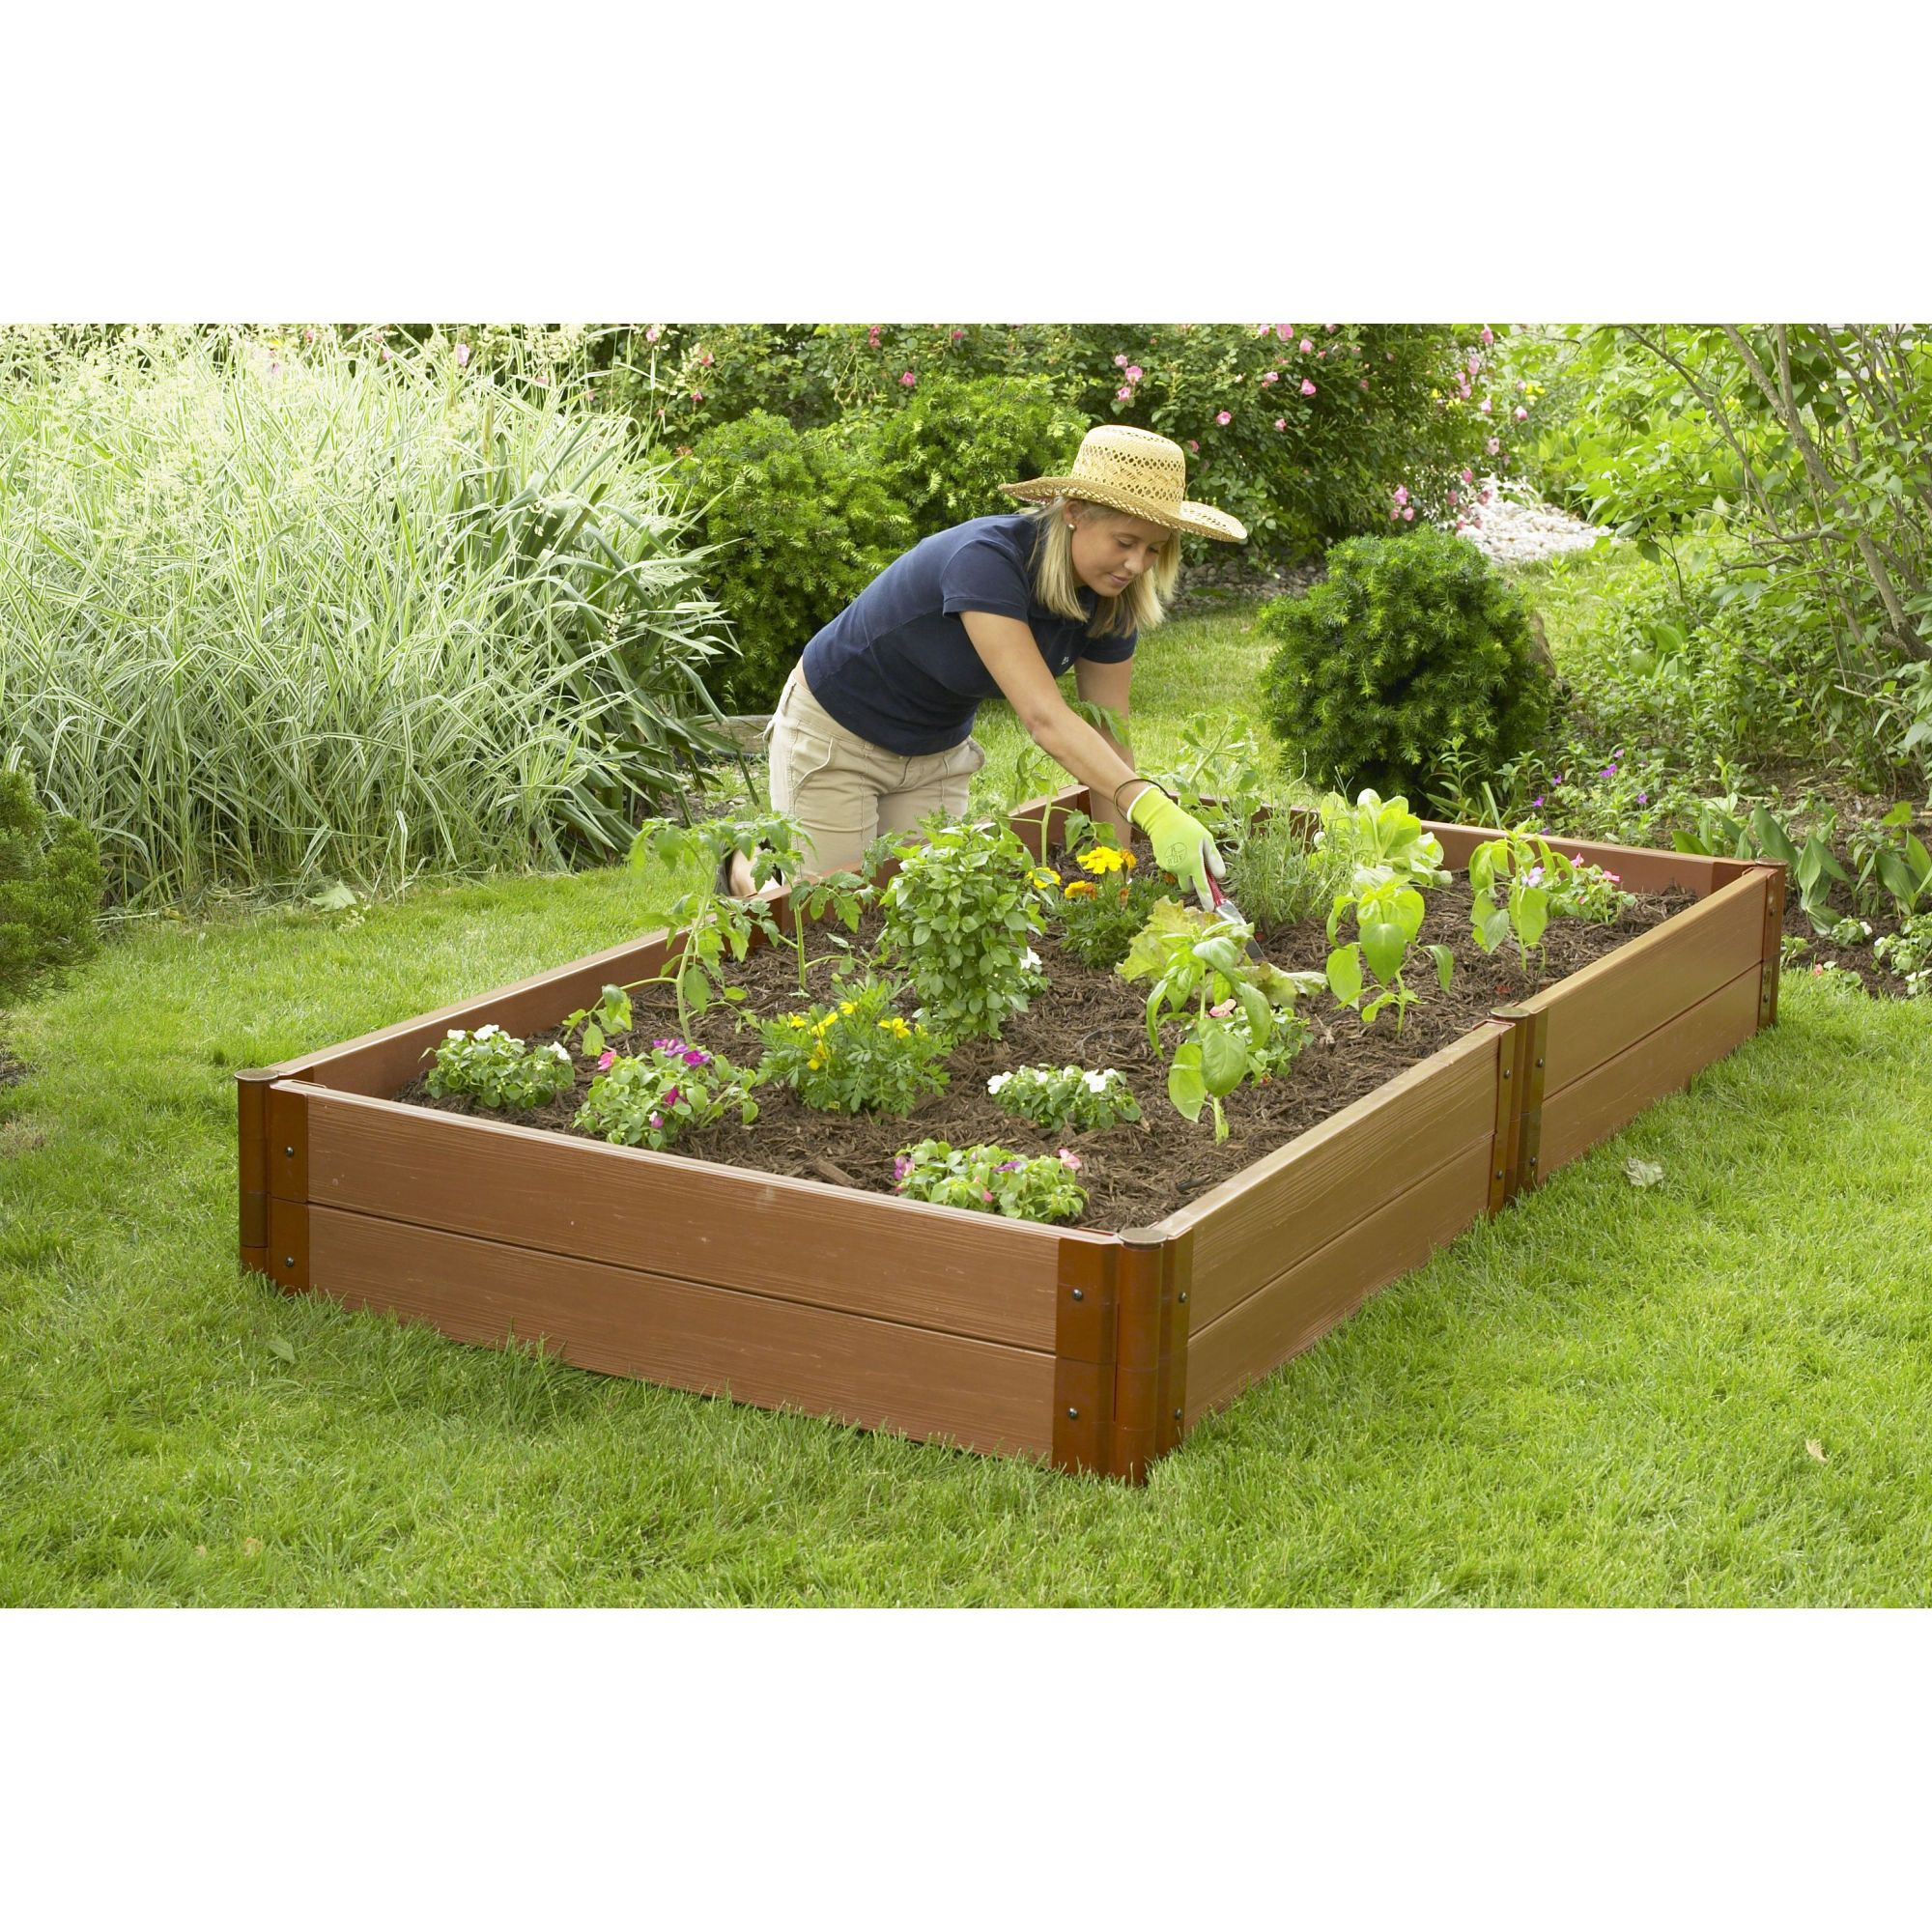 ToolFree Two Inch Series Recycled Plastic Raised Garden